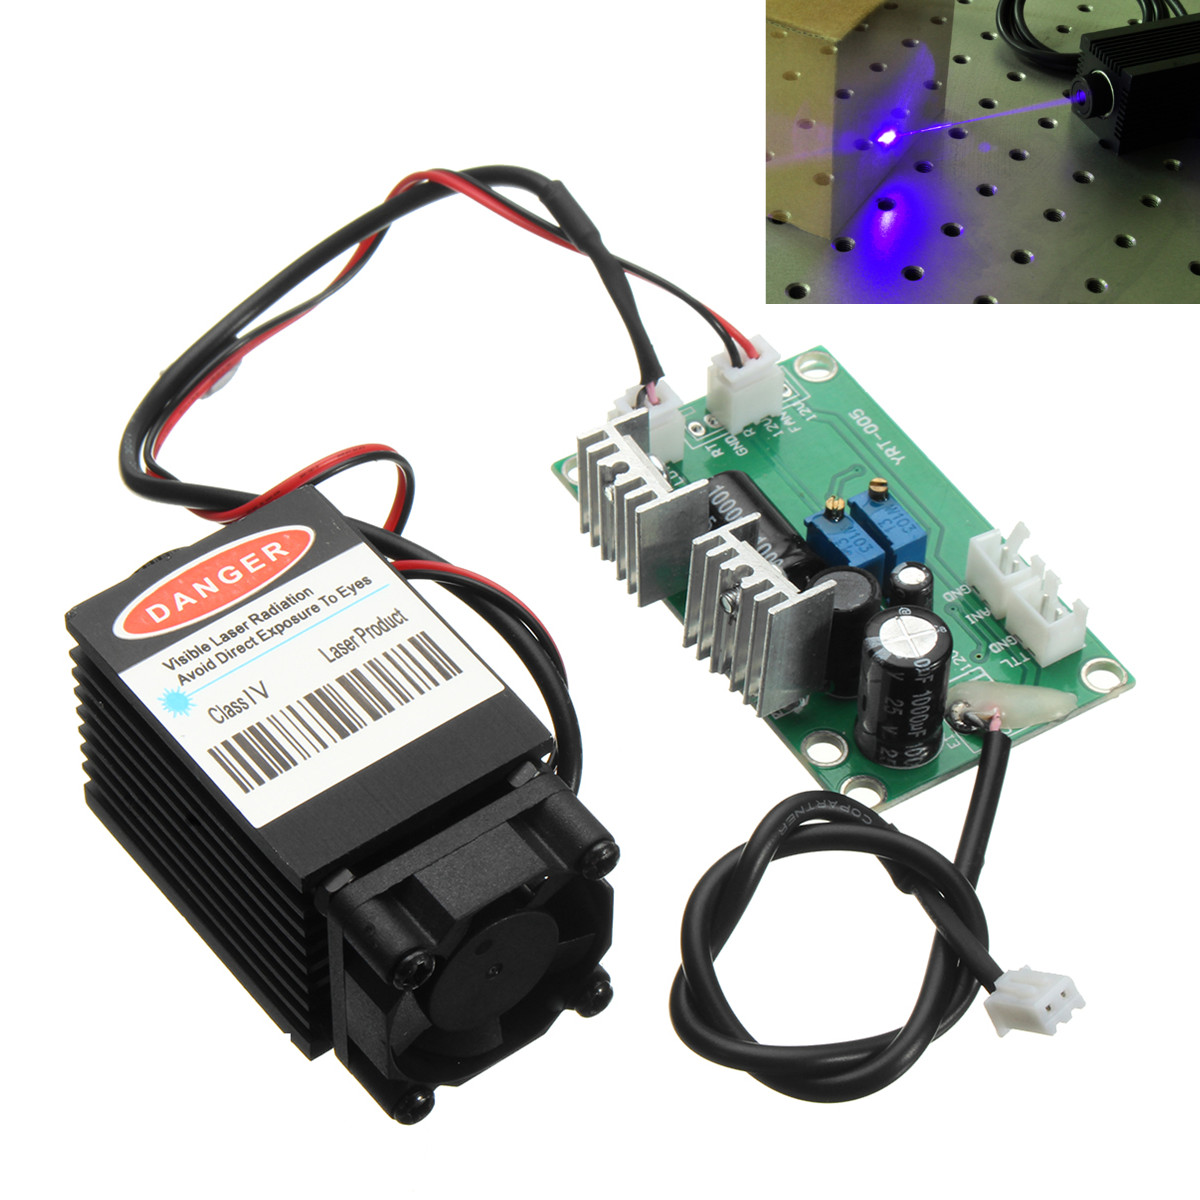 Focusable high power 1.6W 450nm blue laser module with TTL 12V input Wood carving DIY Laser engraver accessories newest hight quality 450nm blue light laser pointer pen power beam 5 heads with charger with goggles with box